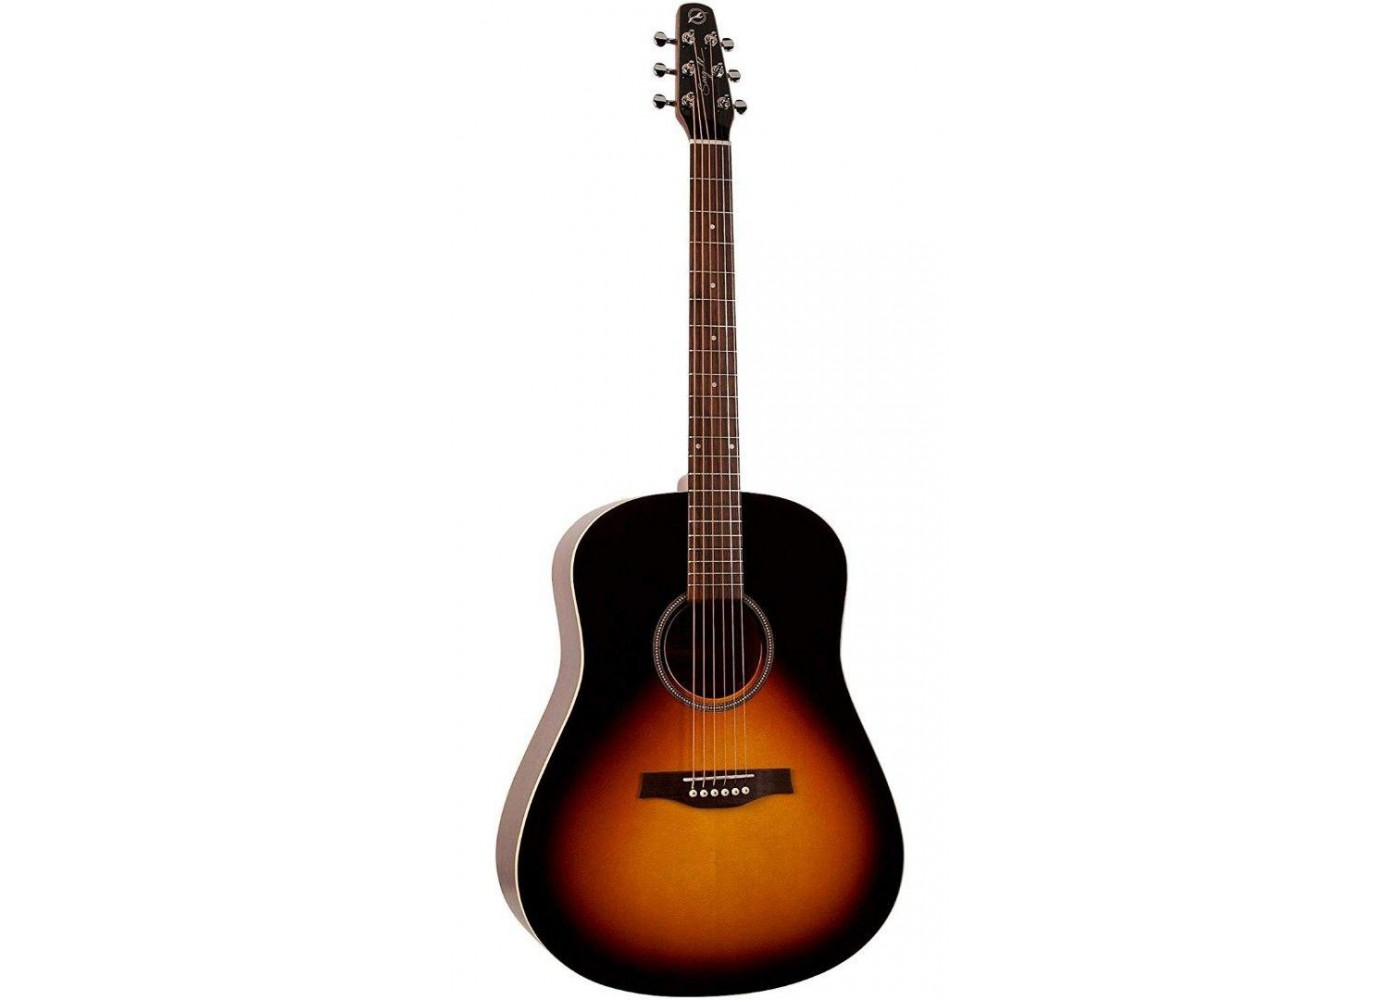 seagull s6 spruce sunburst gt acoustic electric guitar with fishman electronics. Black Bedroom Furniture Sets. Home Design Ideas